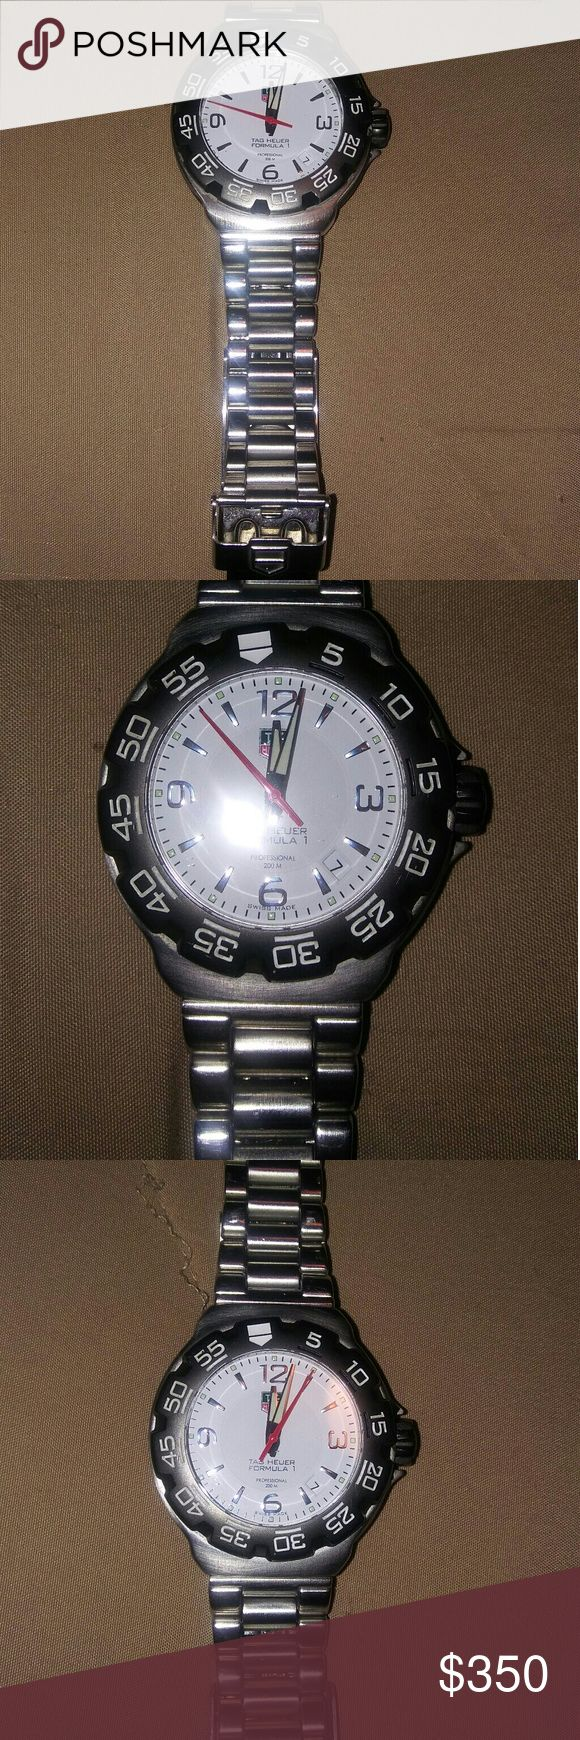 Tag Heuer Formula 1 Professional 200 Meters Watch. Tag Heuer Formula 1 Professional 200 Meters Watch. Mint Condition. New Crystal And Battery. Divers Extension. Price- $350.00. This Will Make An Amazing Christmas Gift! This goes for $450.00 Plus On Ebay So This Is An Amazing Deal. Serious Buyers Only Please! More Pictures And Videos Upon Request Will Ship Same Day Unless Post Office Is Closed For A Holiday! Tag Heuer Accessories Jewelry